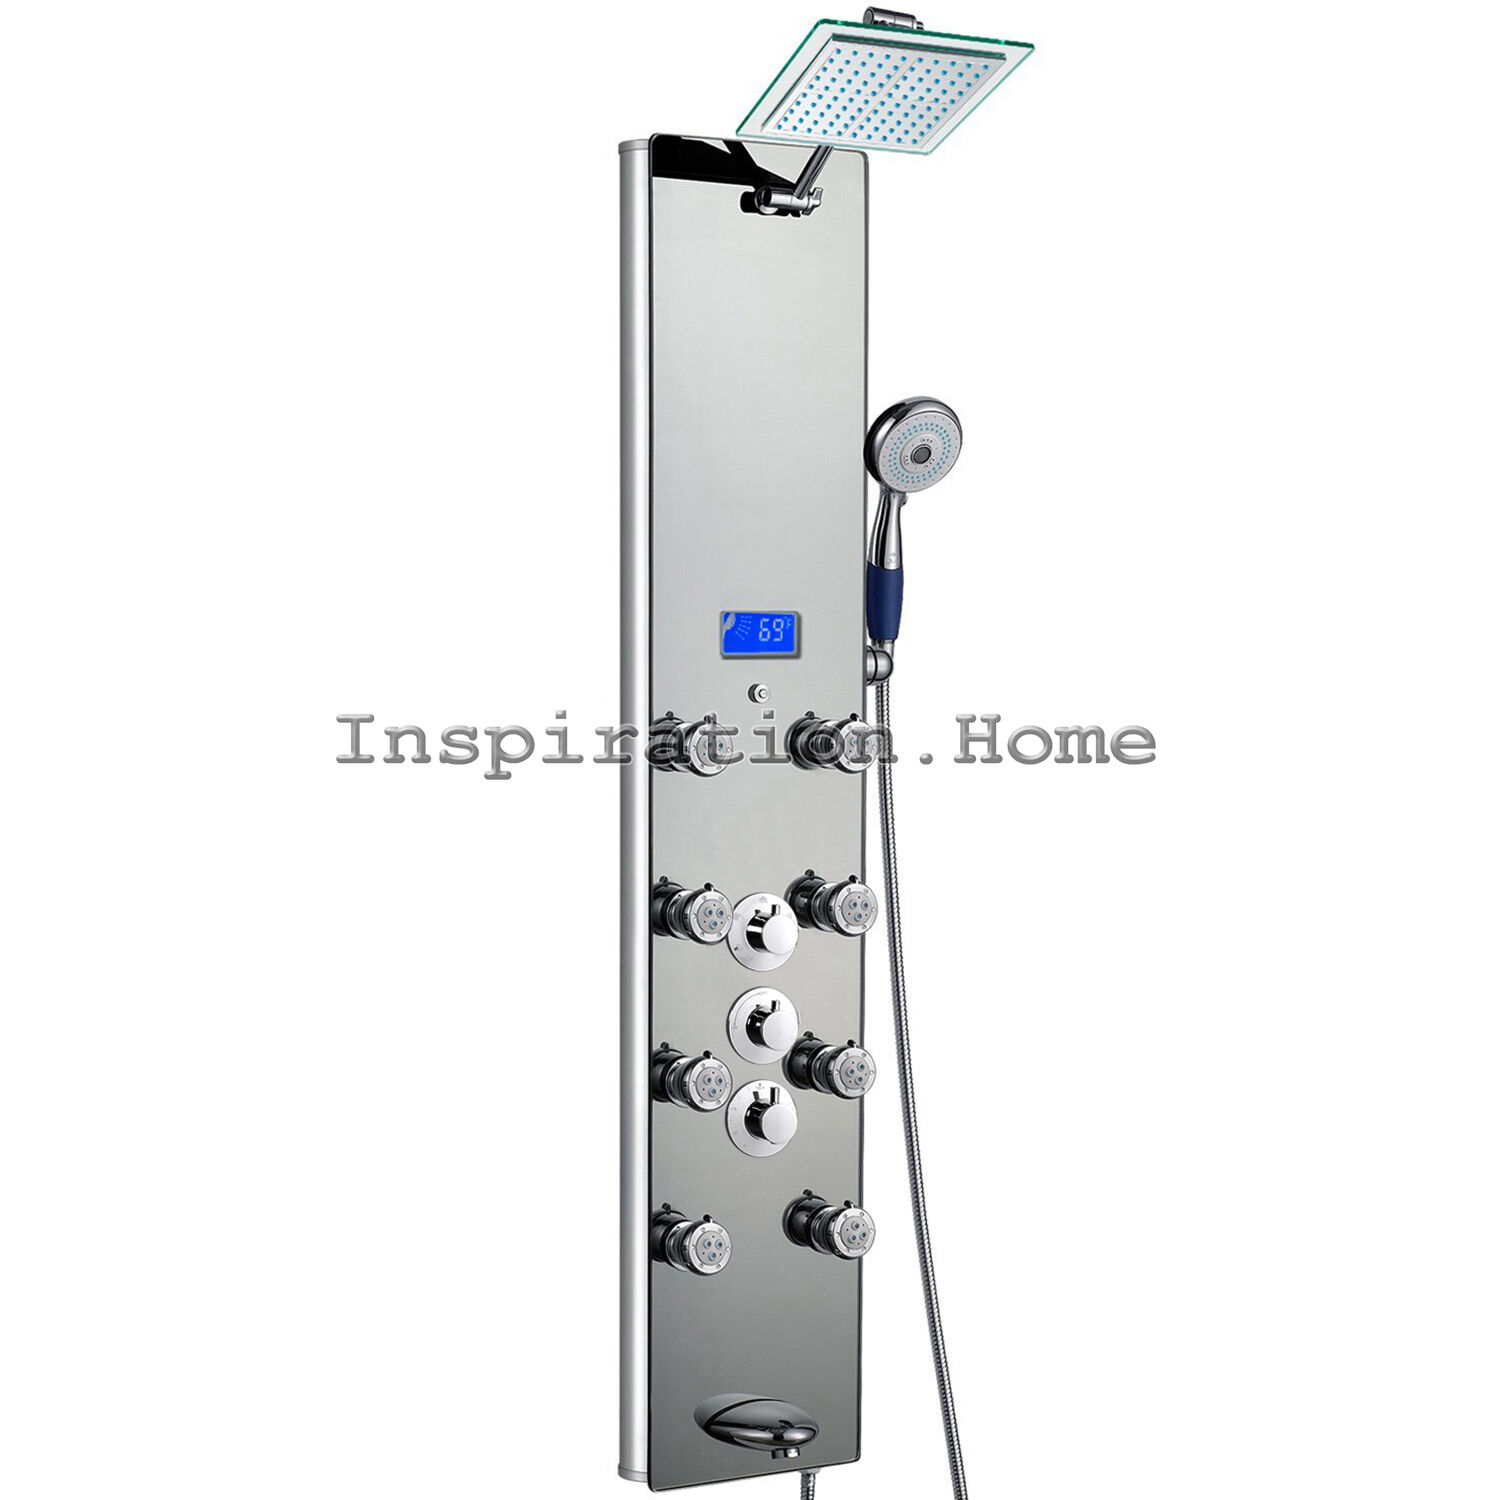 52-tempered-glass-mirror-shower-panel-multi-function-massage-jet-tower-system